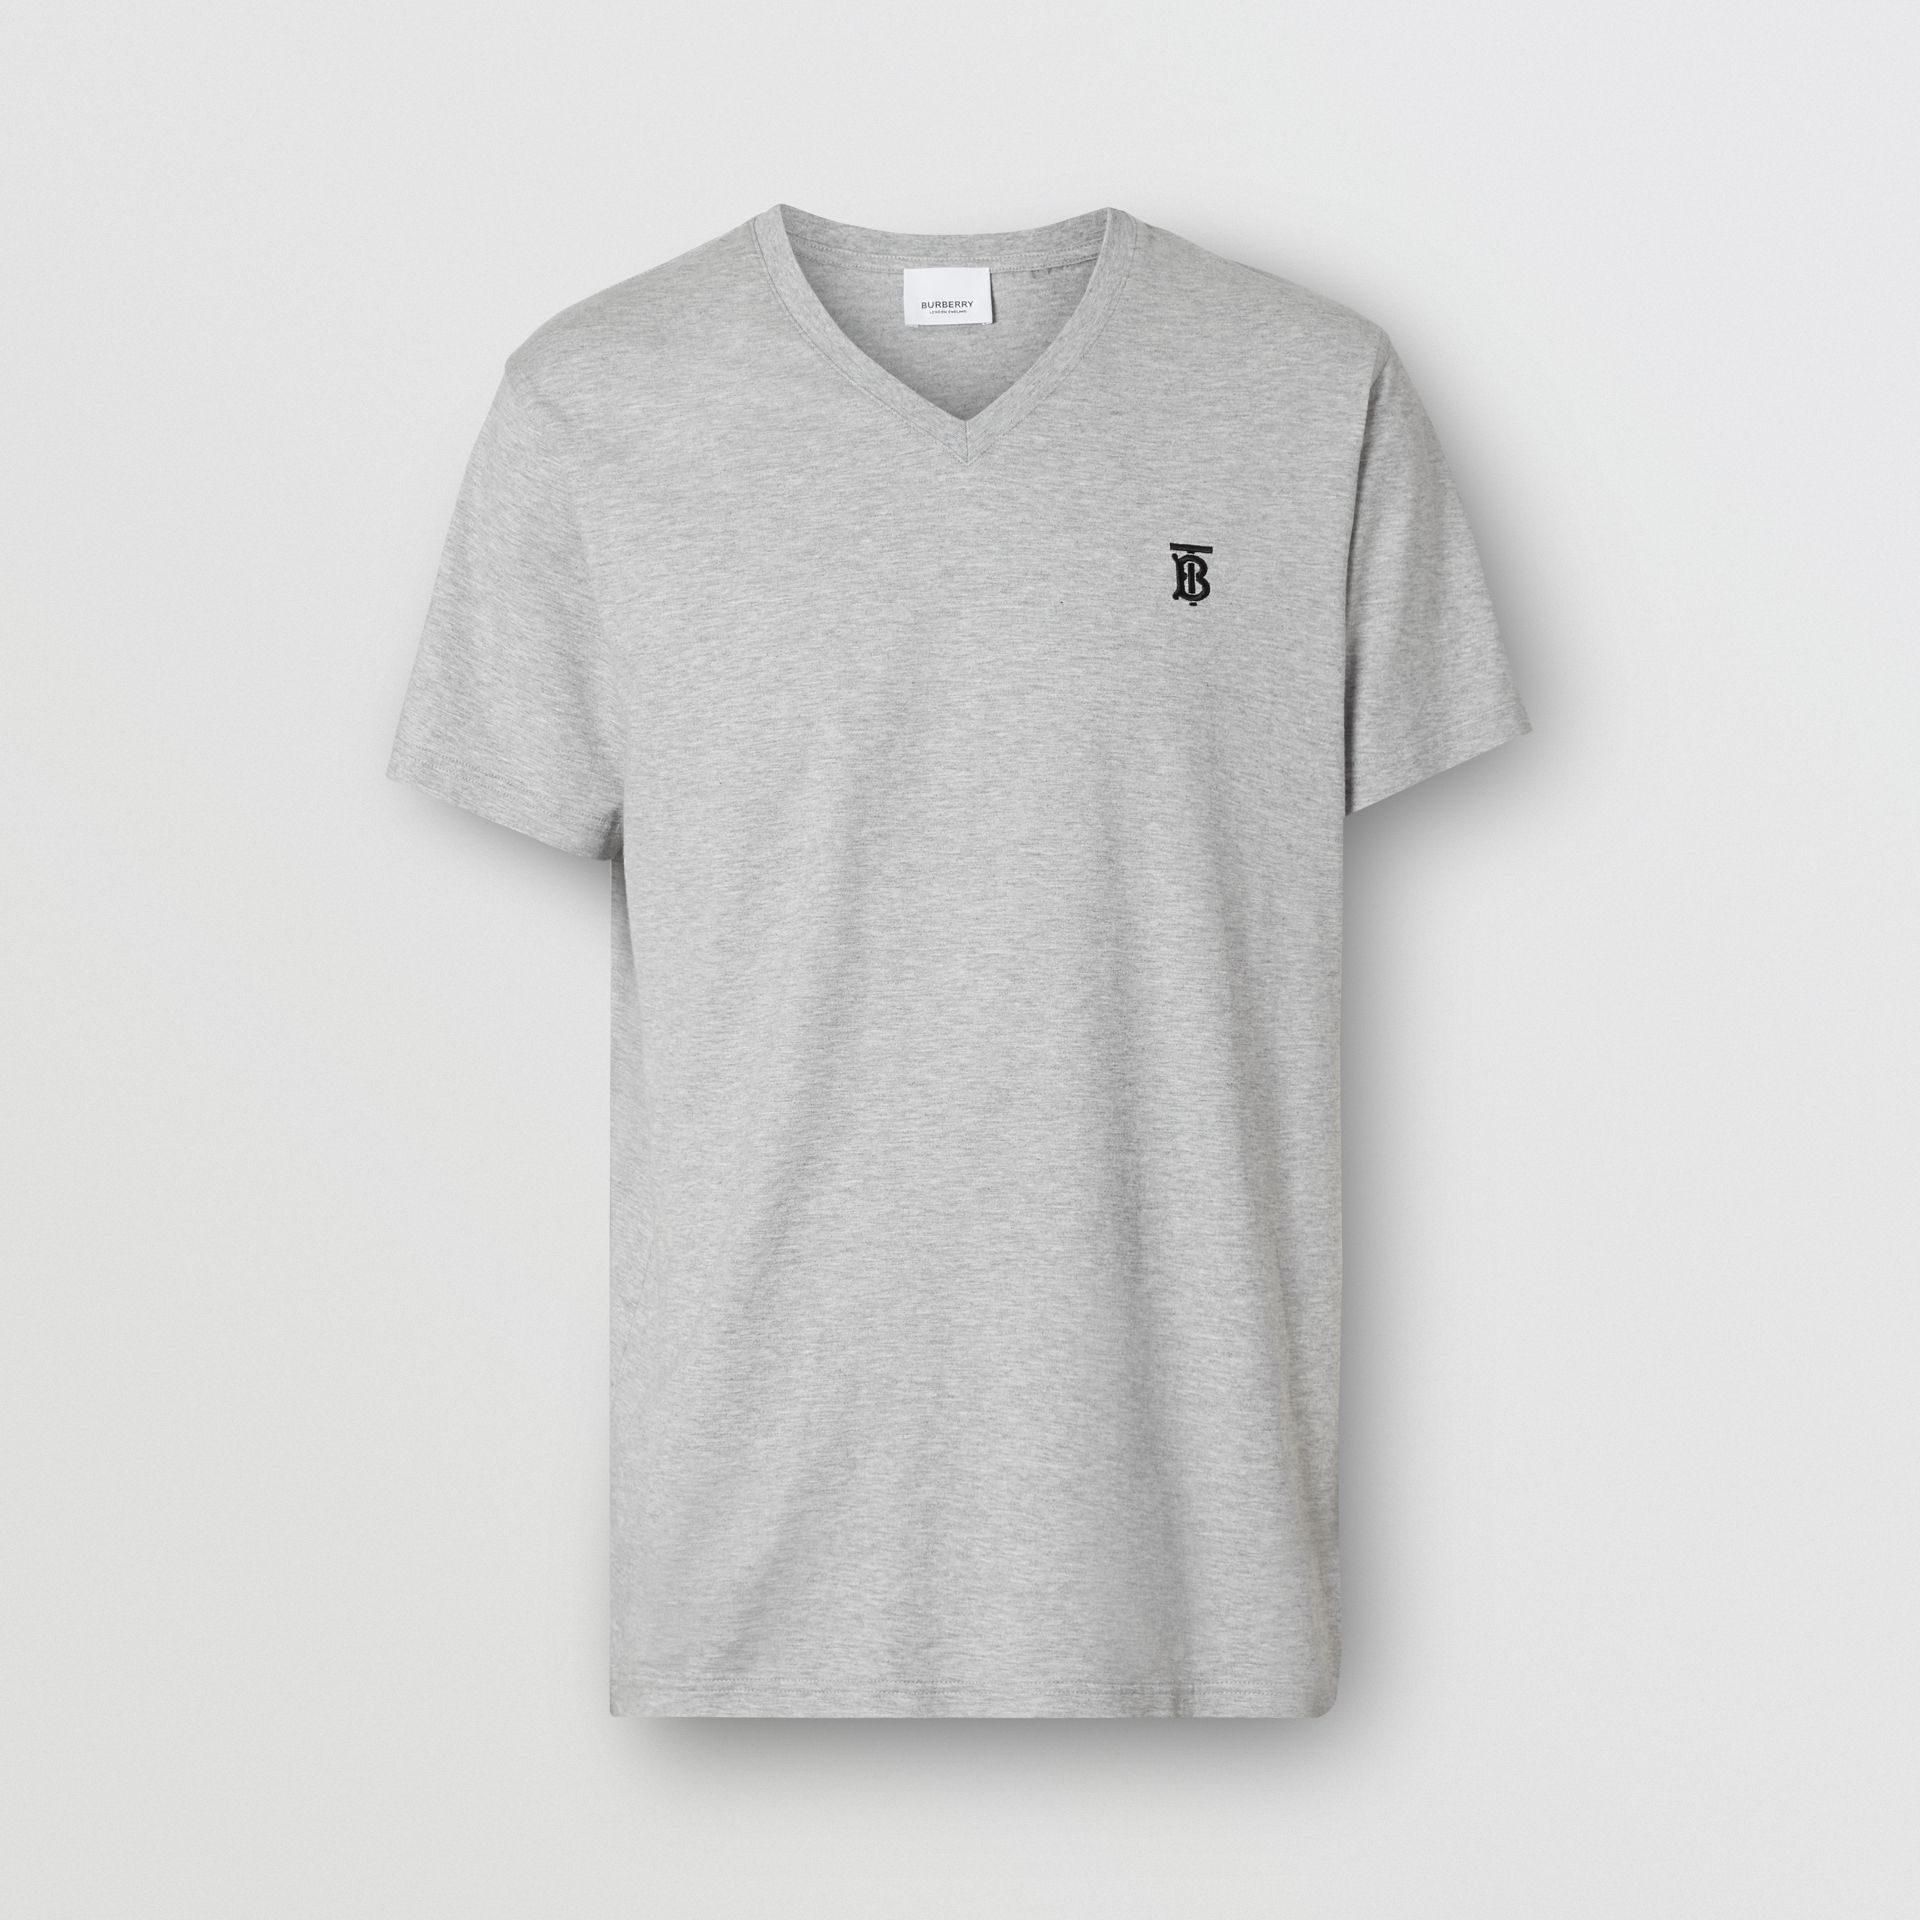 Monogram Motif Cotton V-neck T-shirt in Pale Grey Melange - Men | Burberry United Kingdom - gallery image 3